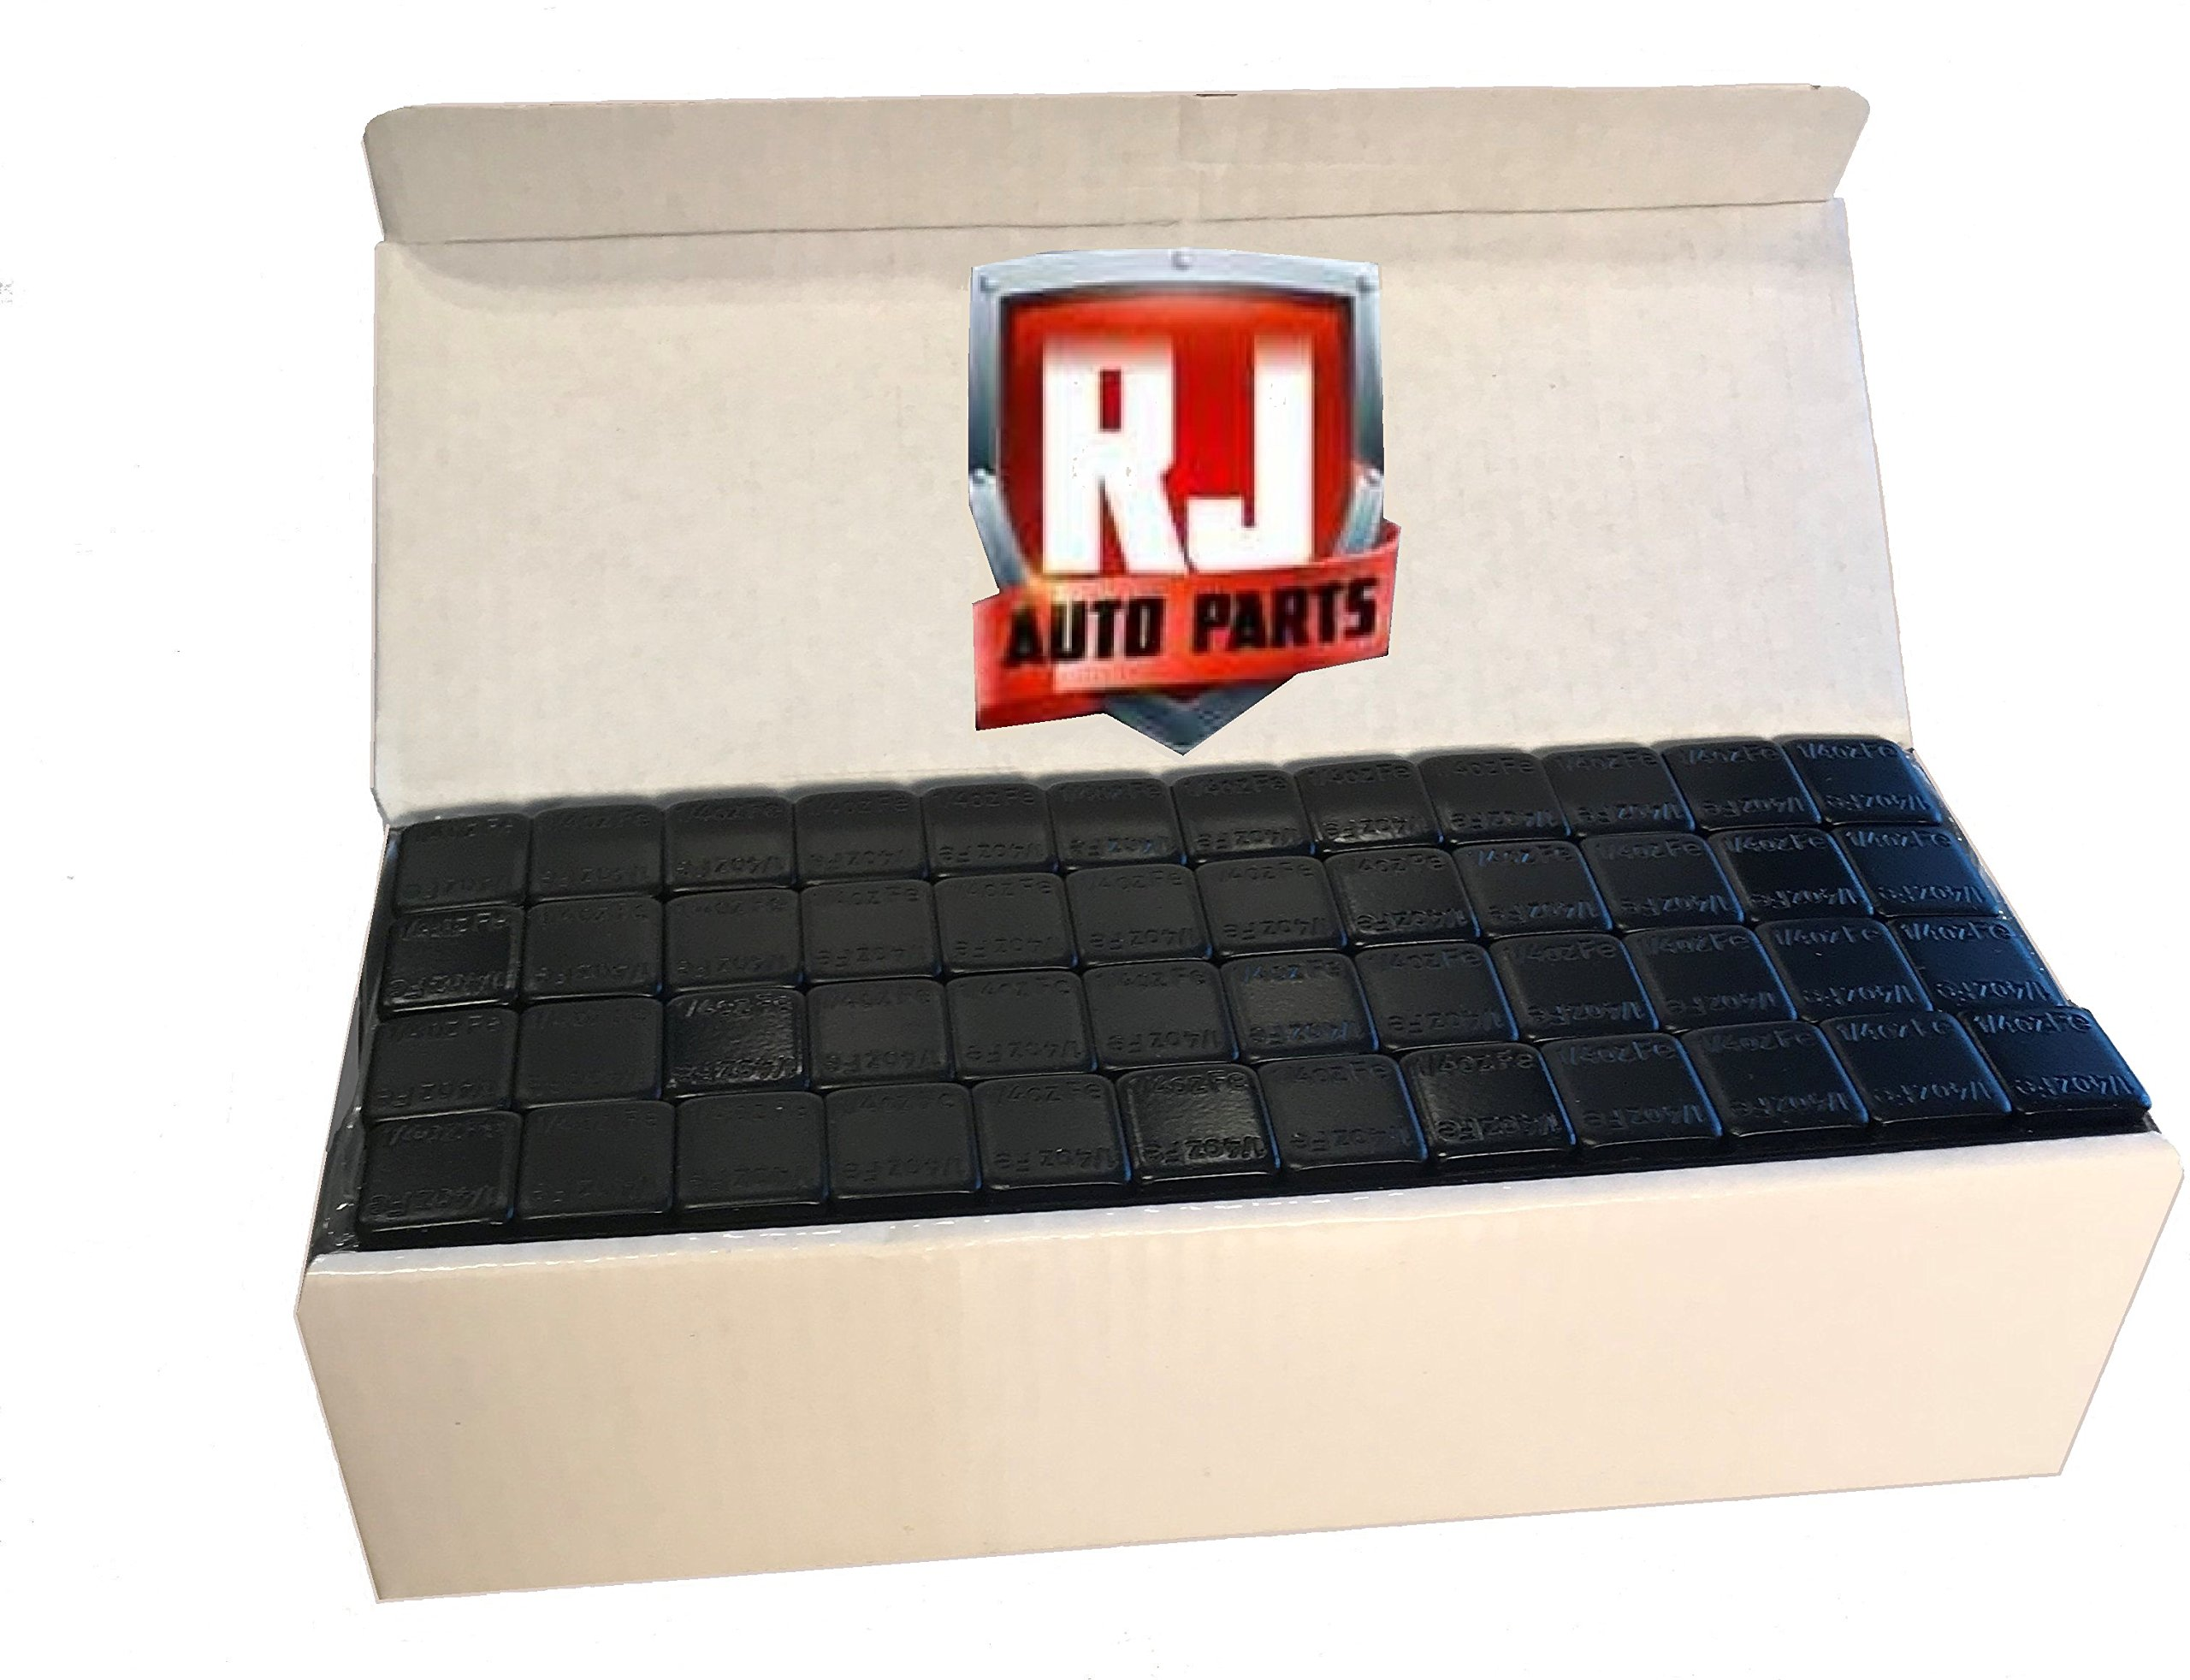 6 Boxes Wheel Weights, Black .25 oz. Stick-on Adhesive Tape, Lead Free, (54 lbs) 3456 Pieces by RJ Auto Parts